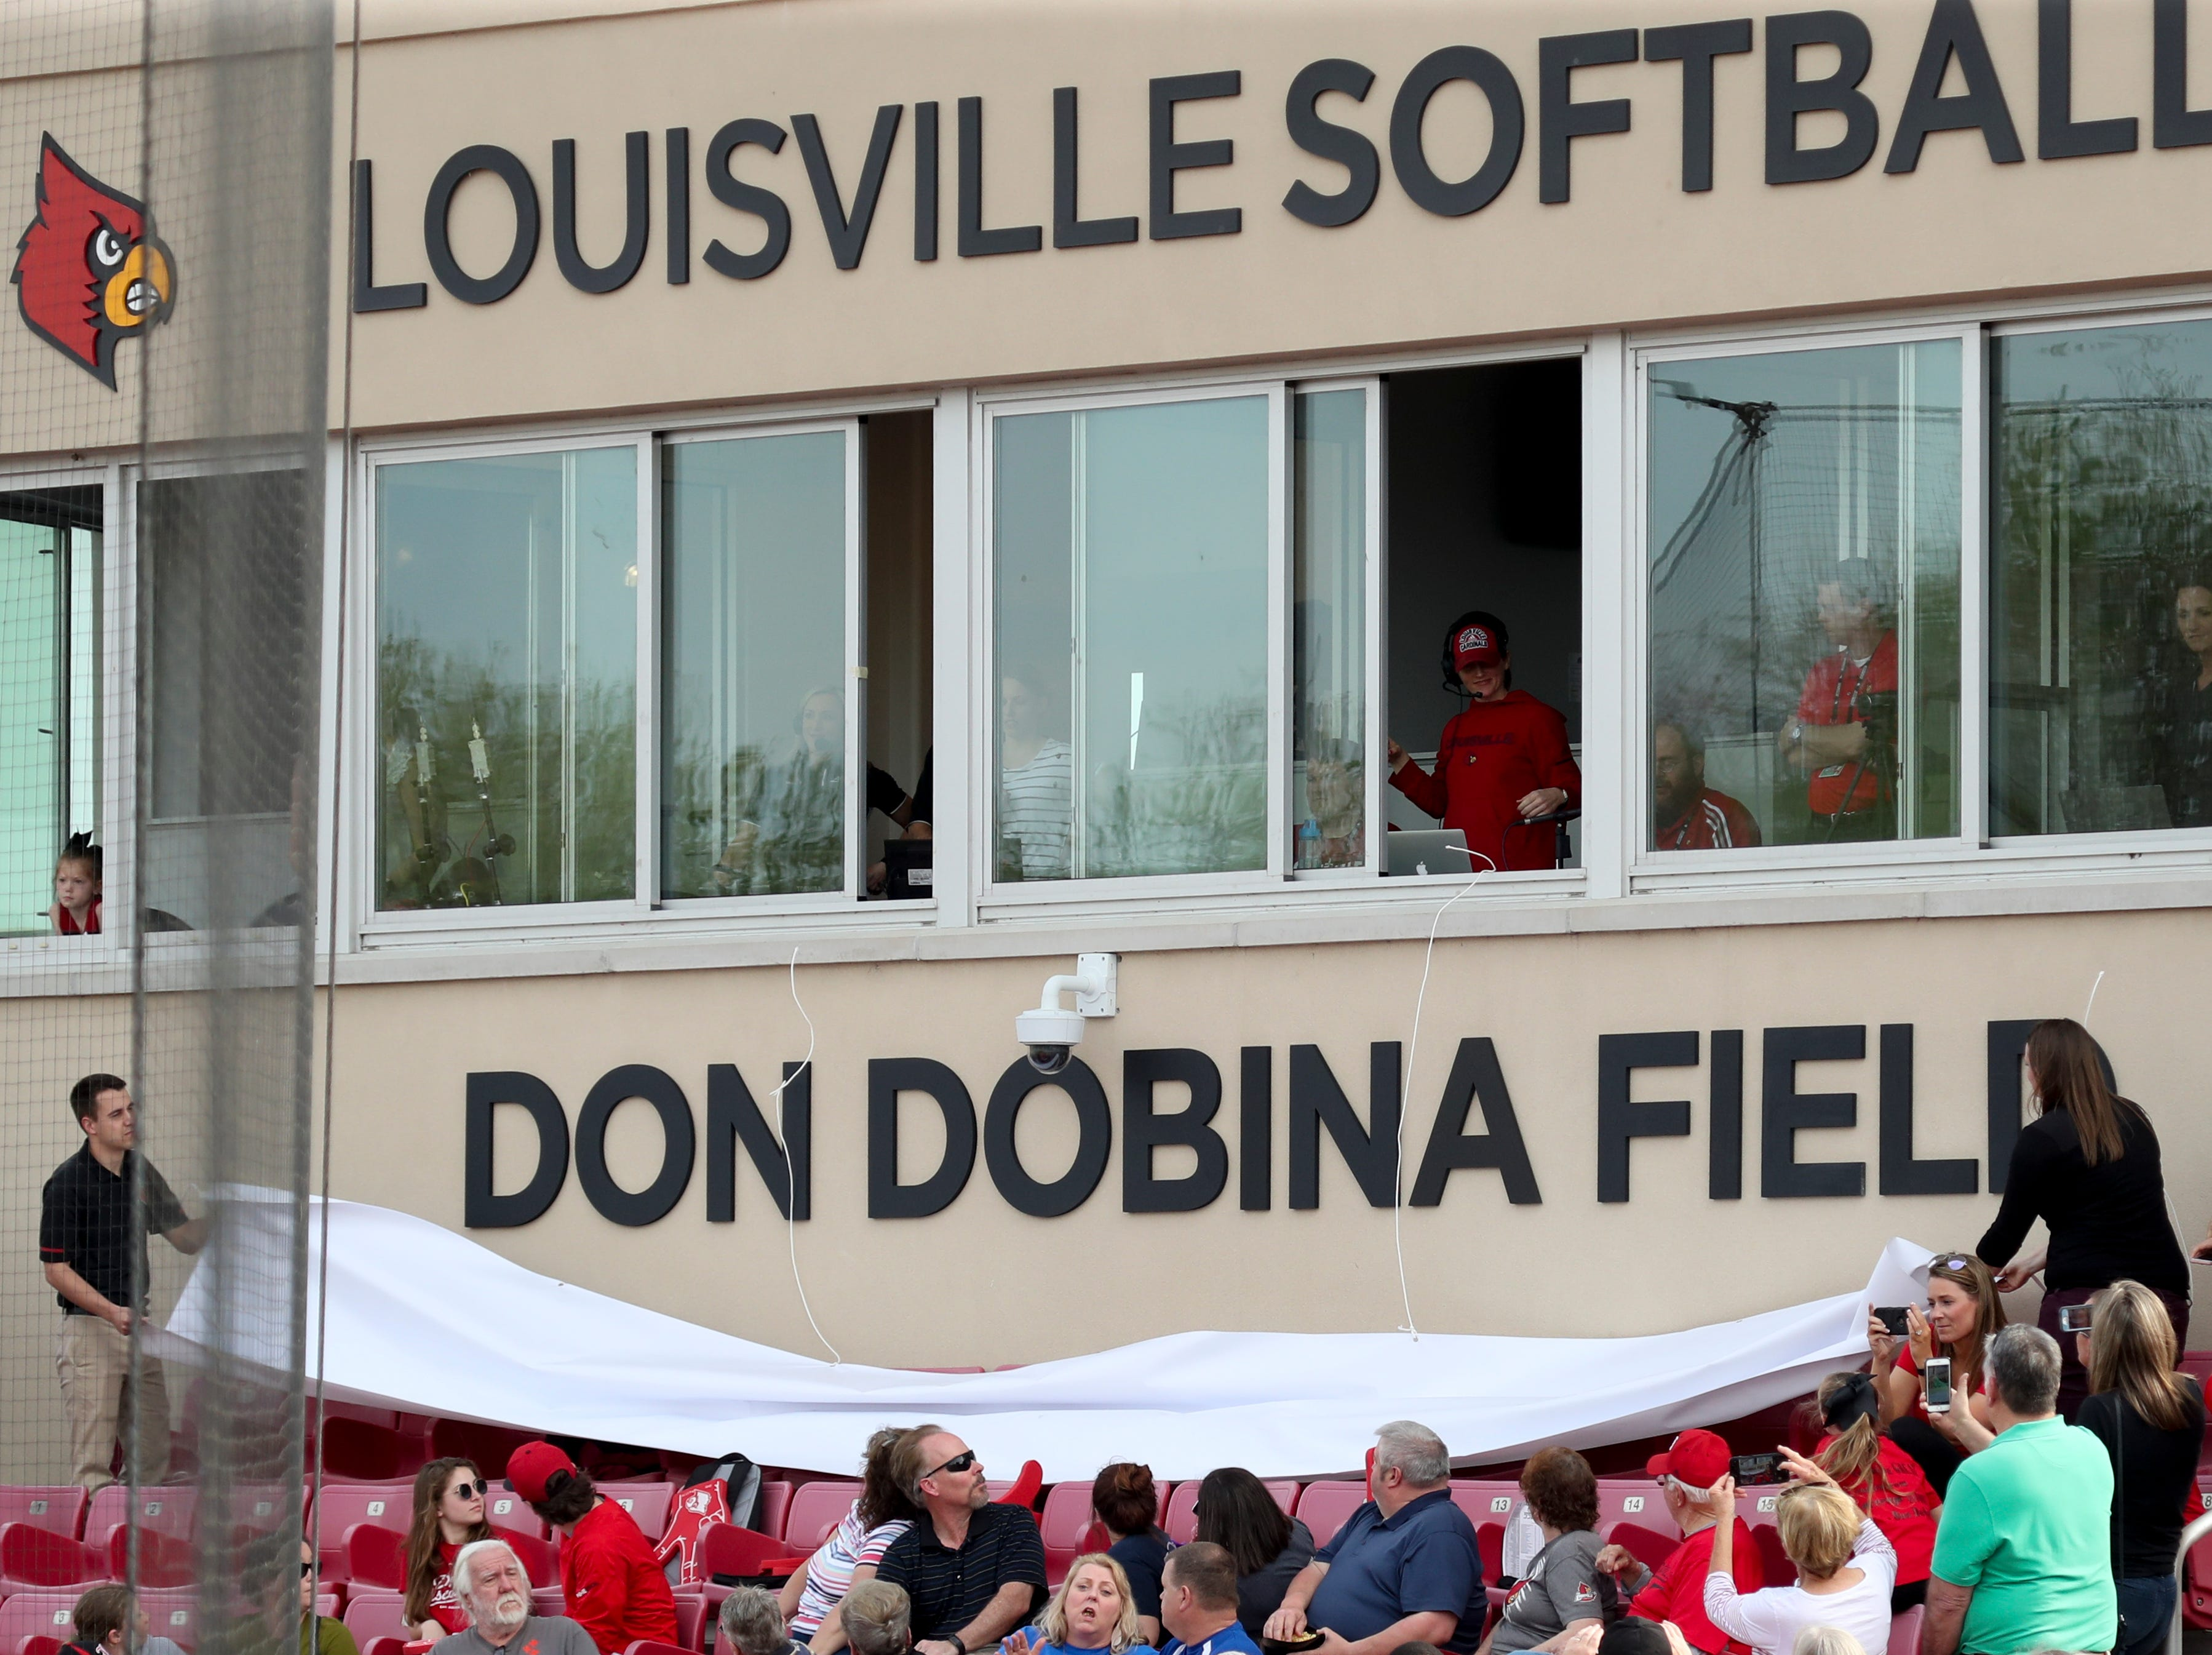 Louisville softball dedicated Don Dobina Field before their game against Kentucky on April 17.